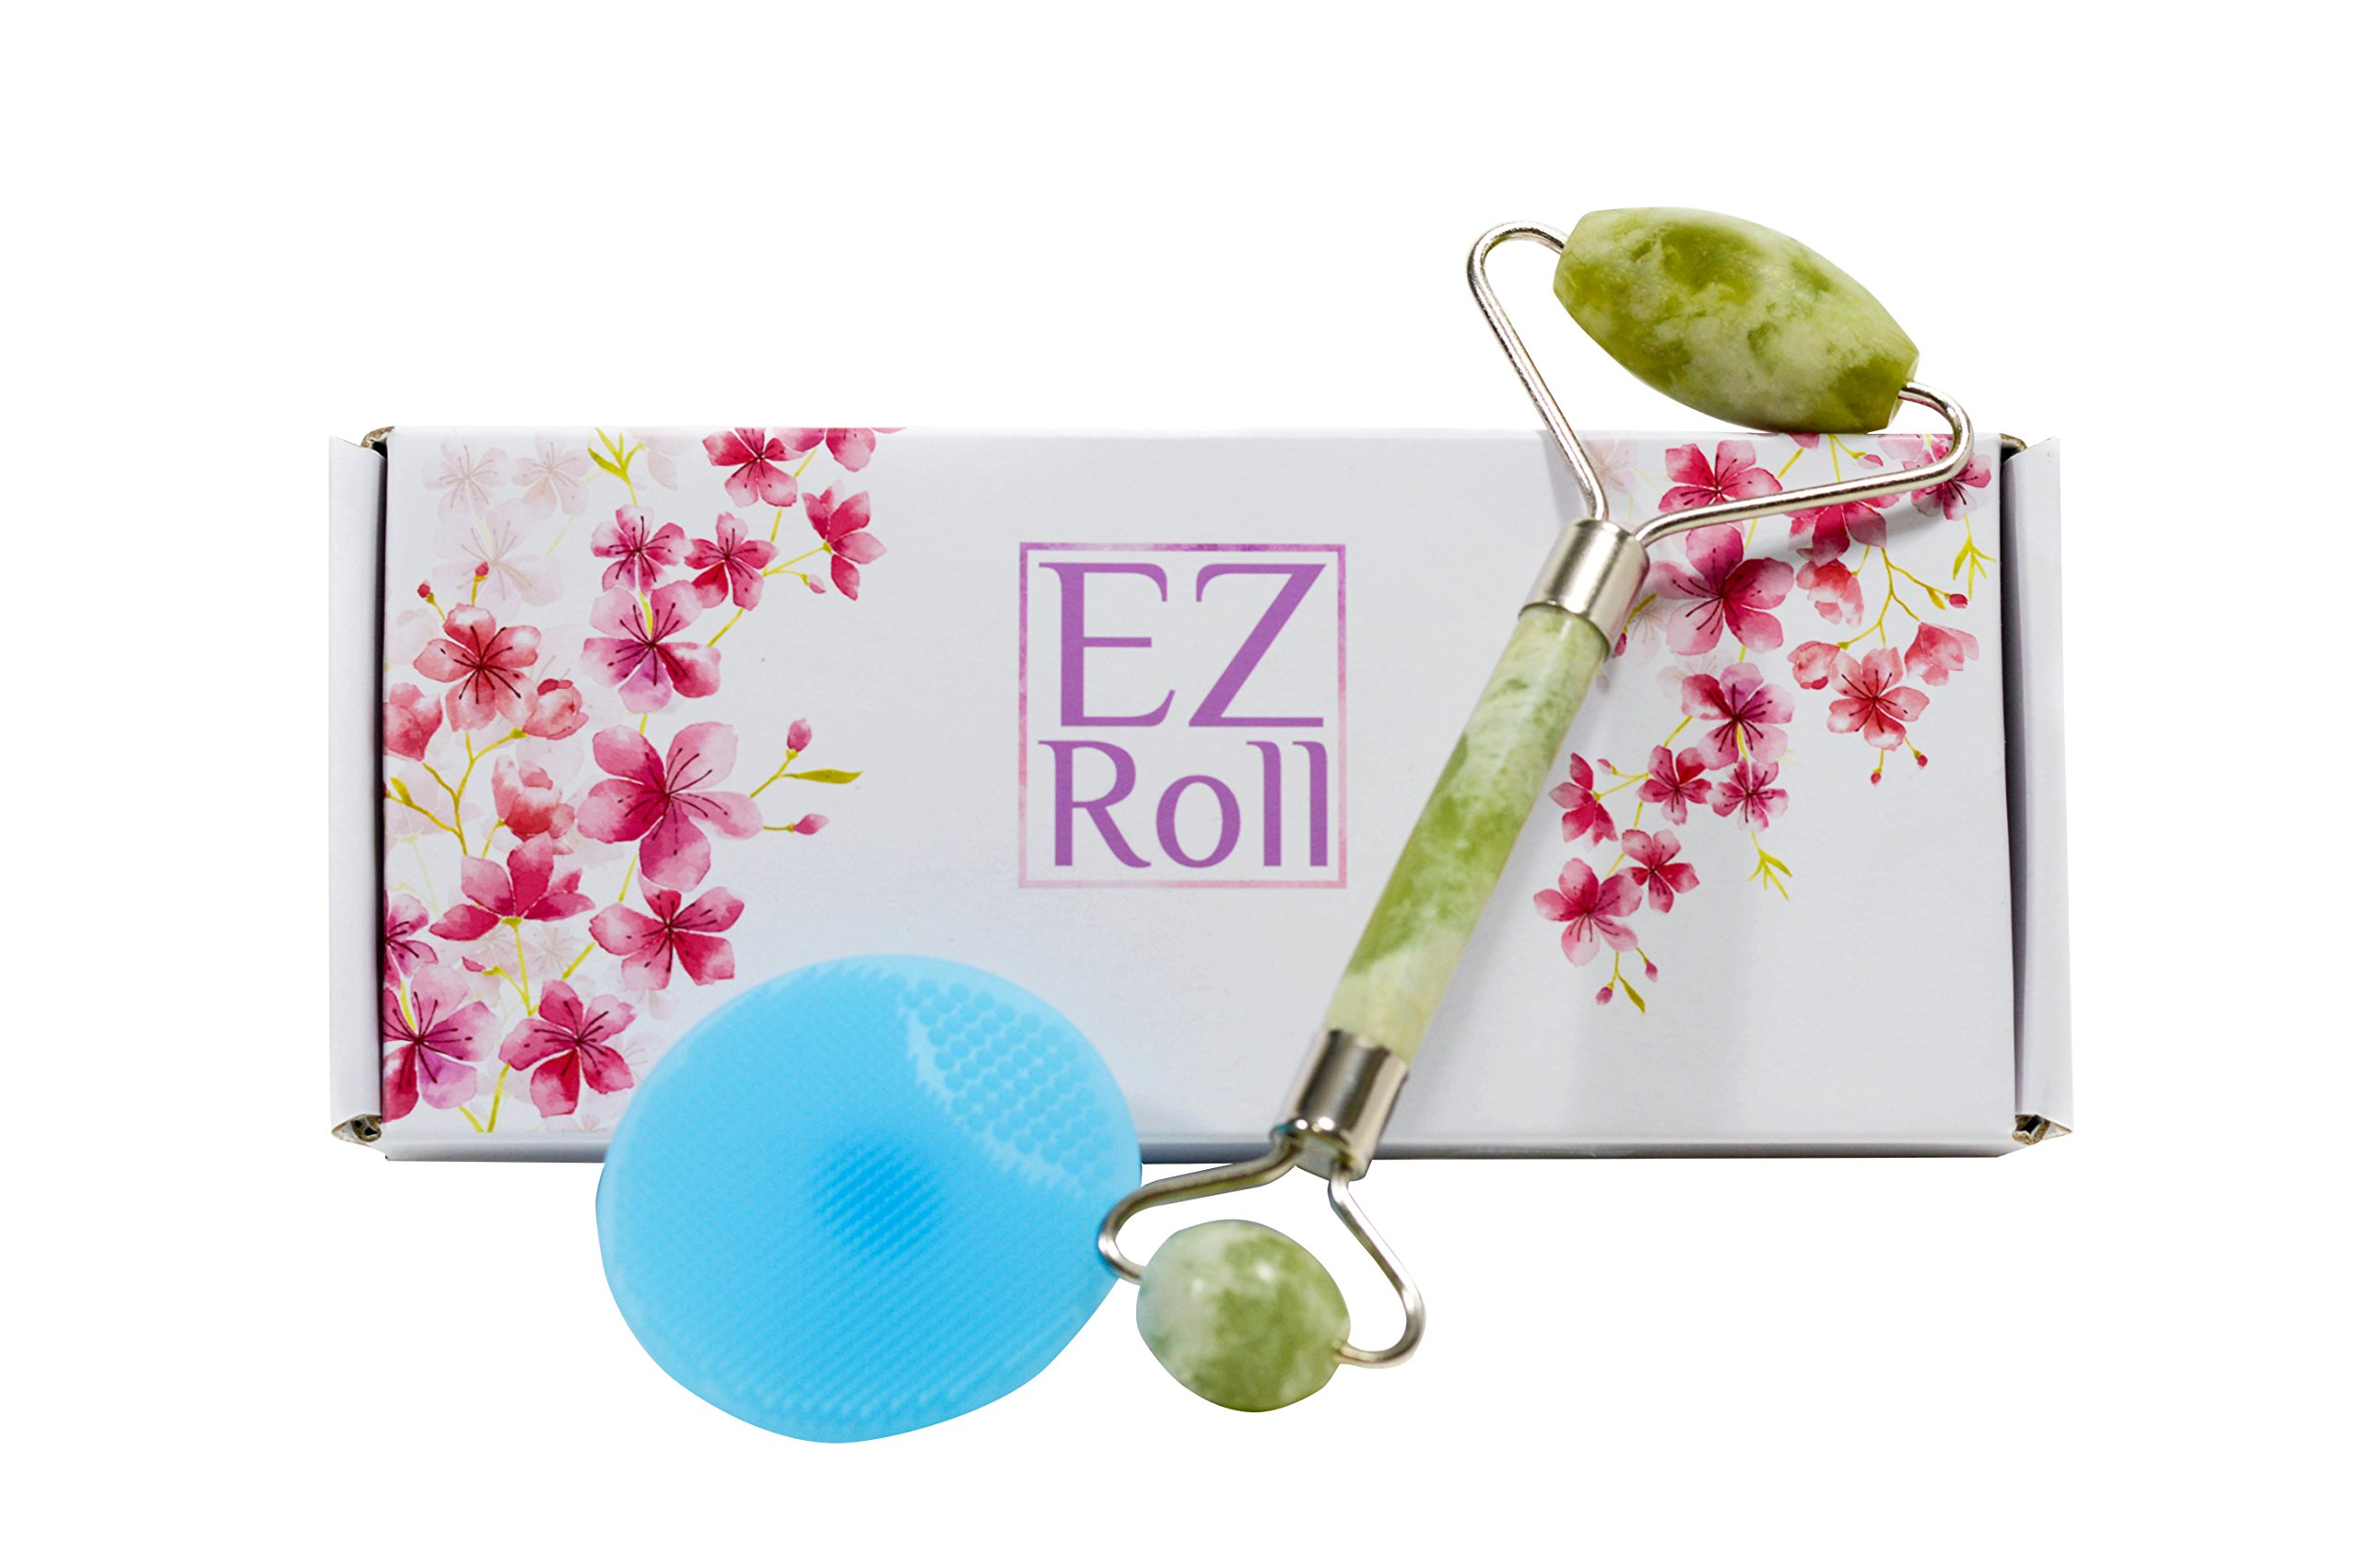 Jade Roller Anti-Aging Skin Care with Silicon Cleansing Brush | Anti-Wrinkle Facial and Exfoliating Double Roll Tool